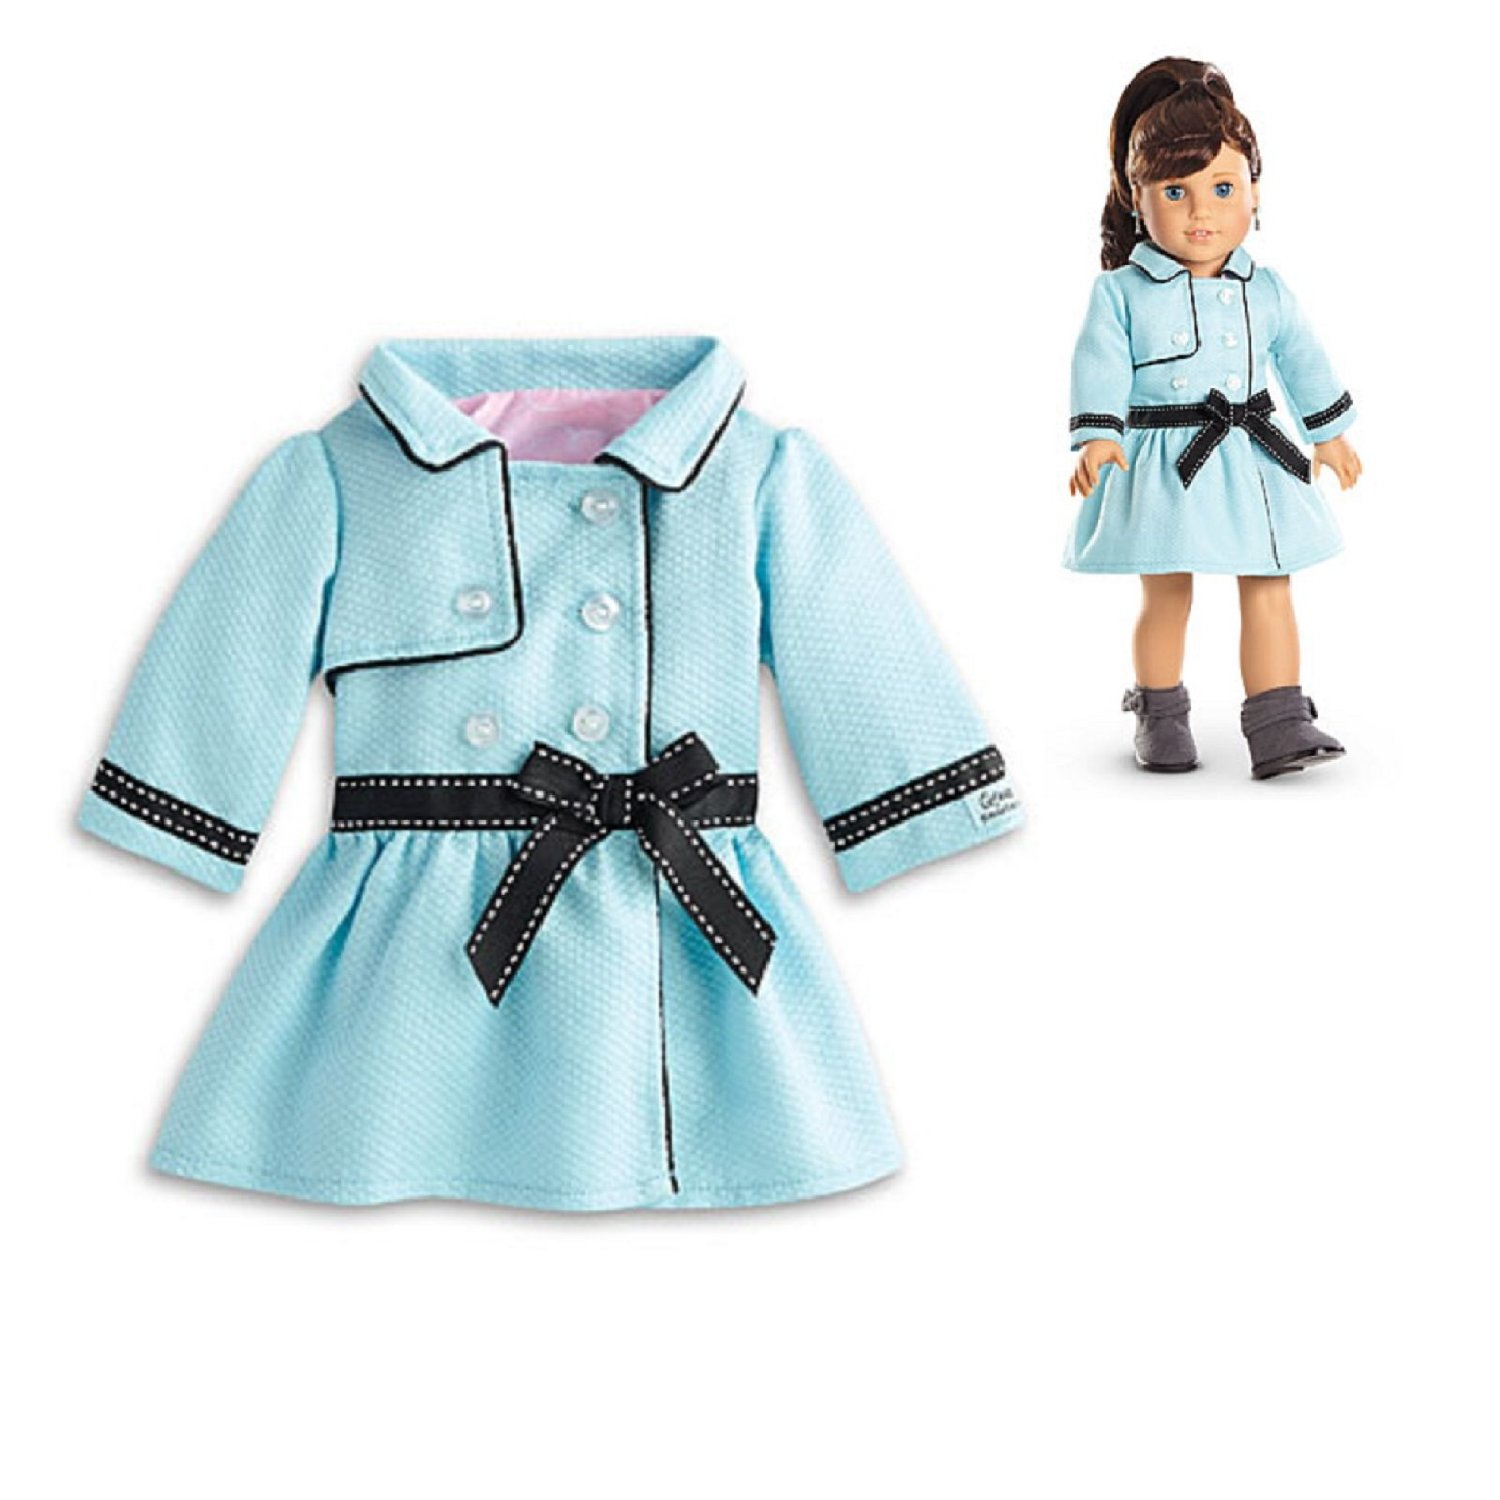 American Girl Grace - Grace's Travel Coat for Dolls - American Girl of 2015